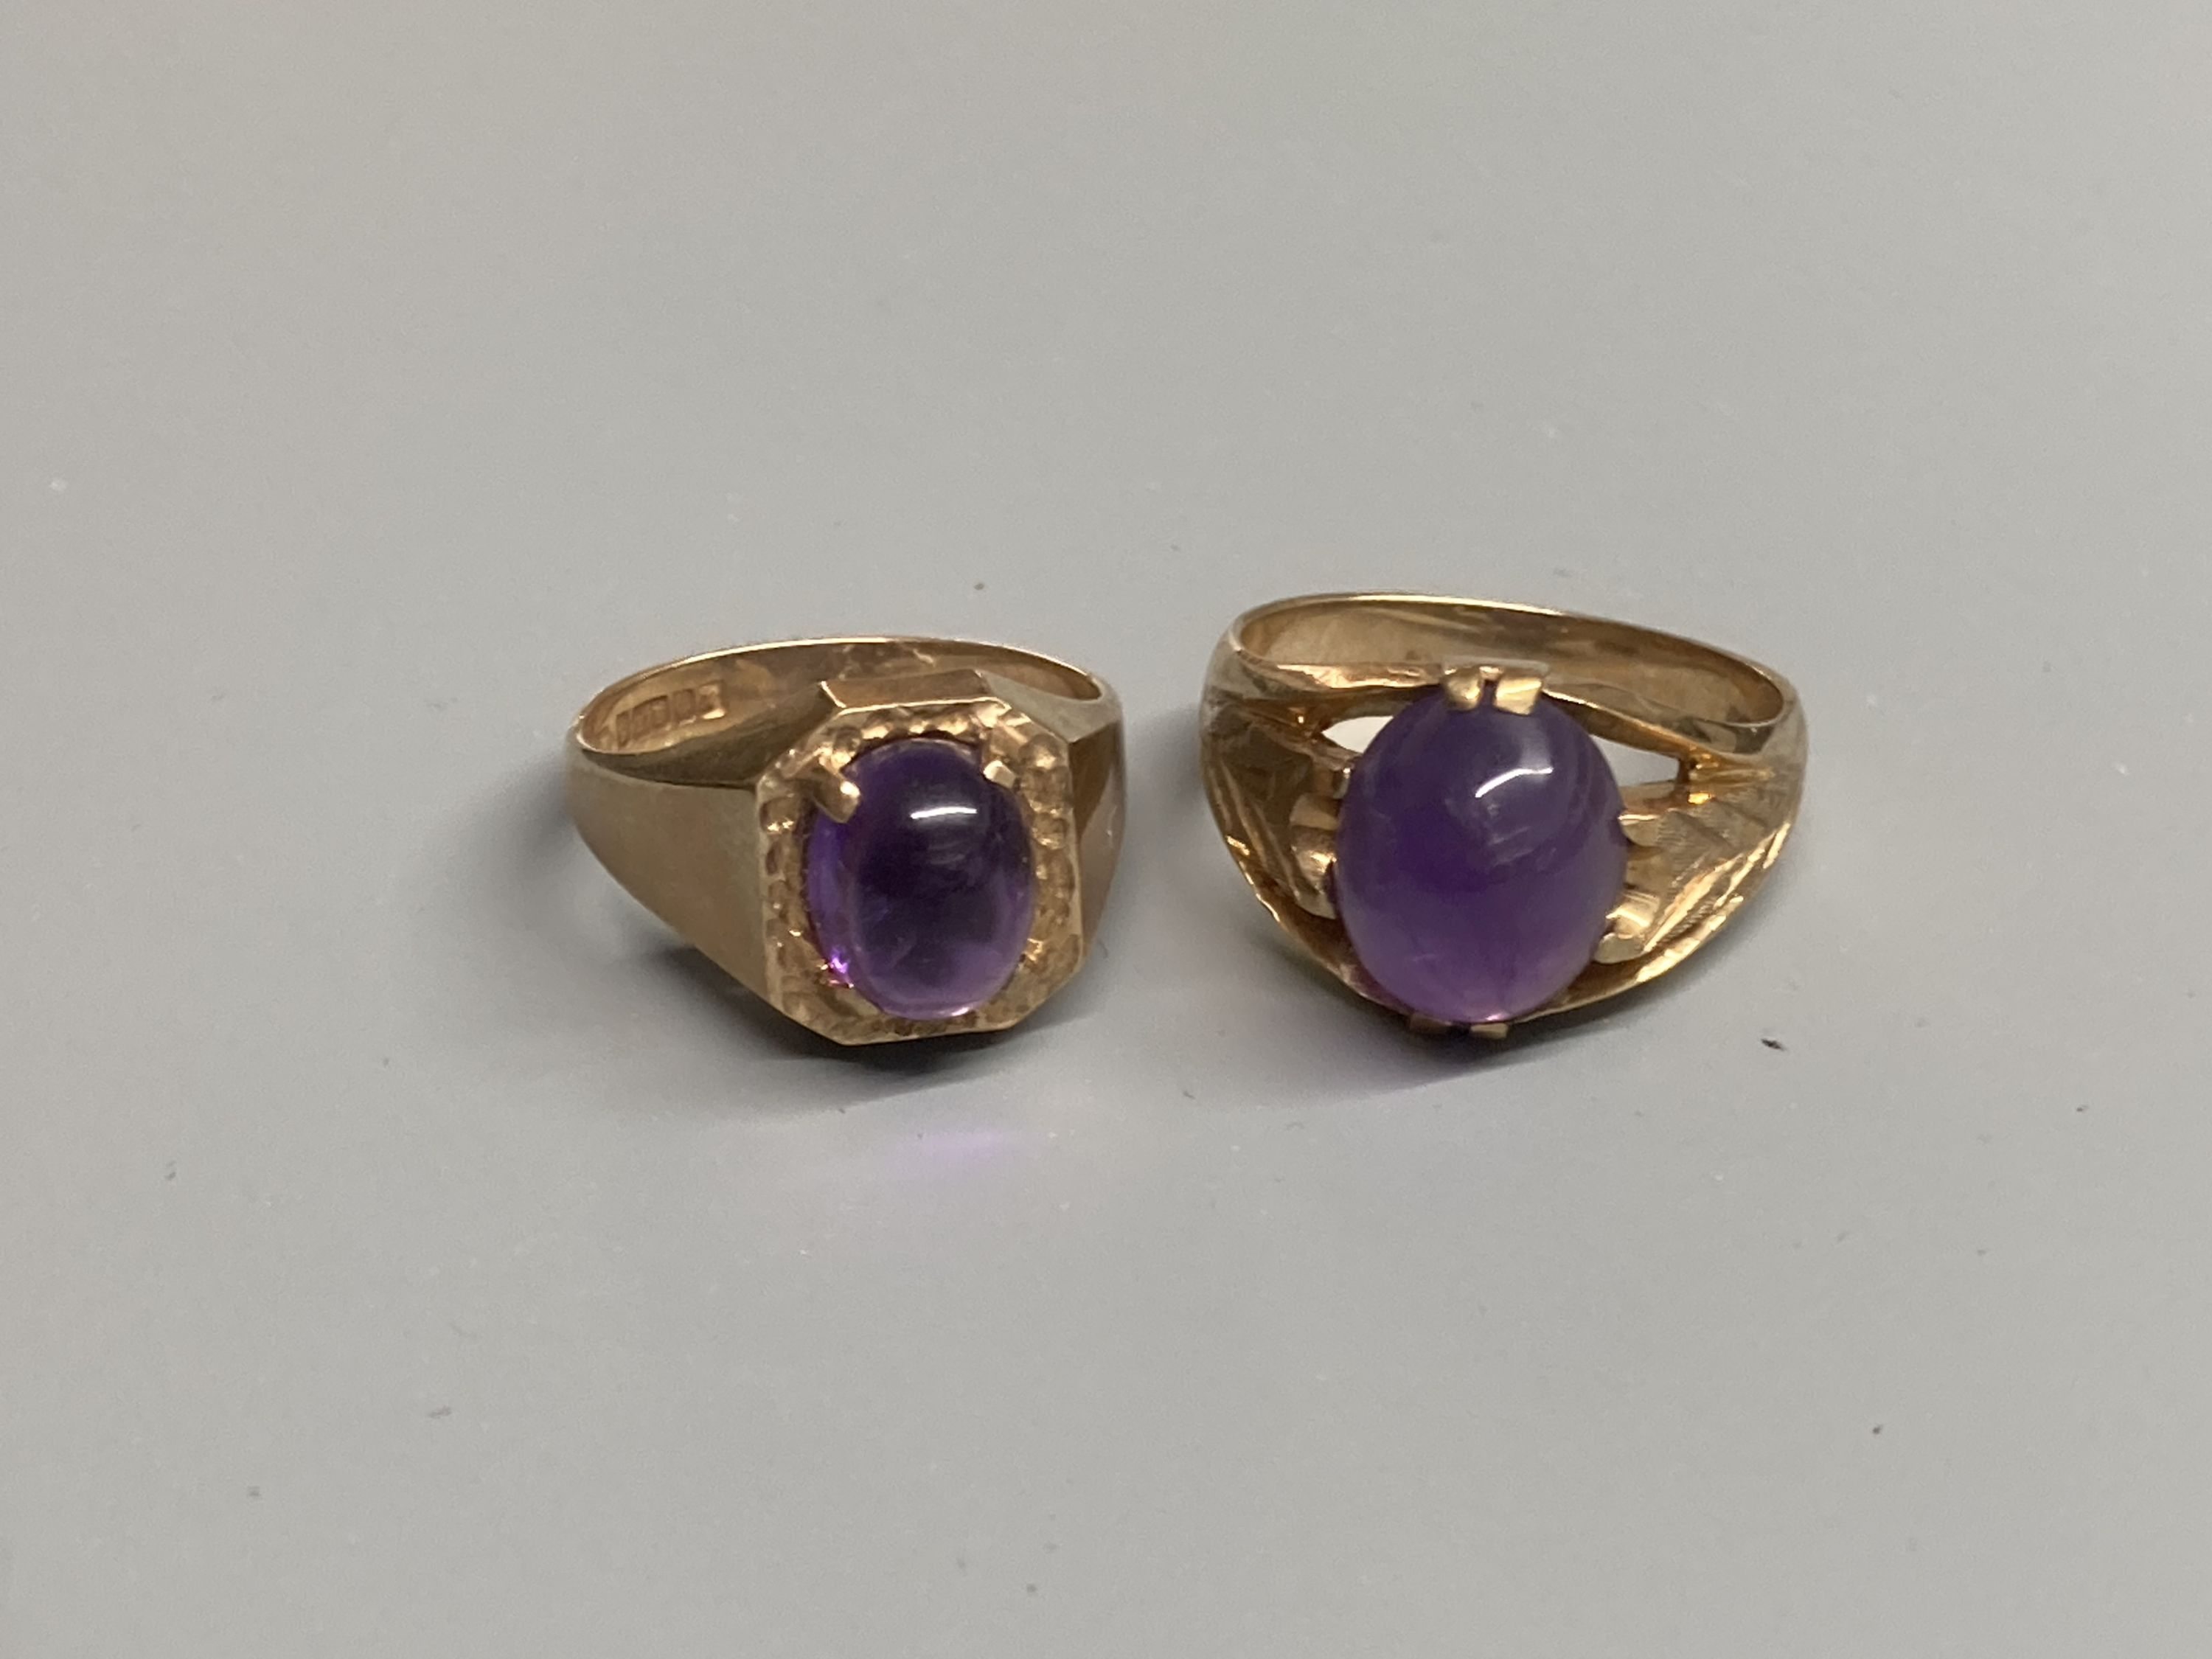 Two modern 9ct gold and cabochon amethyst set dress rings, sizes Q/R & T,gross 11.6 grams.